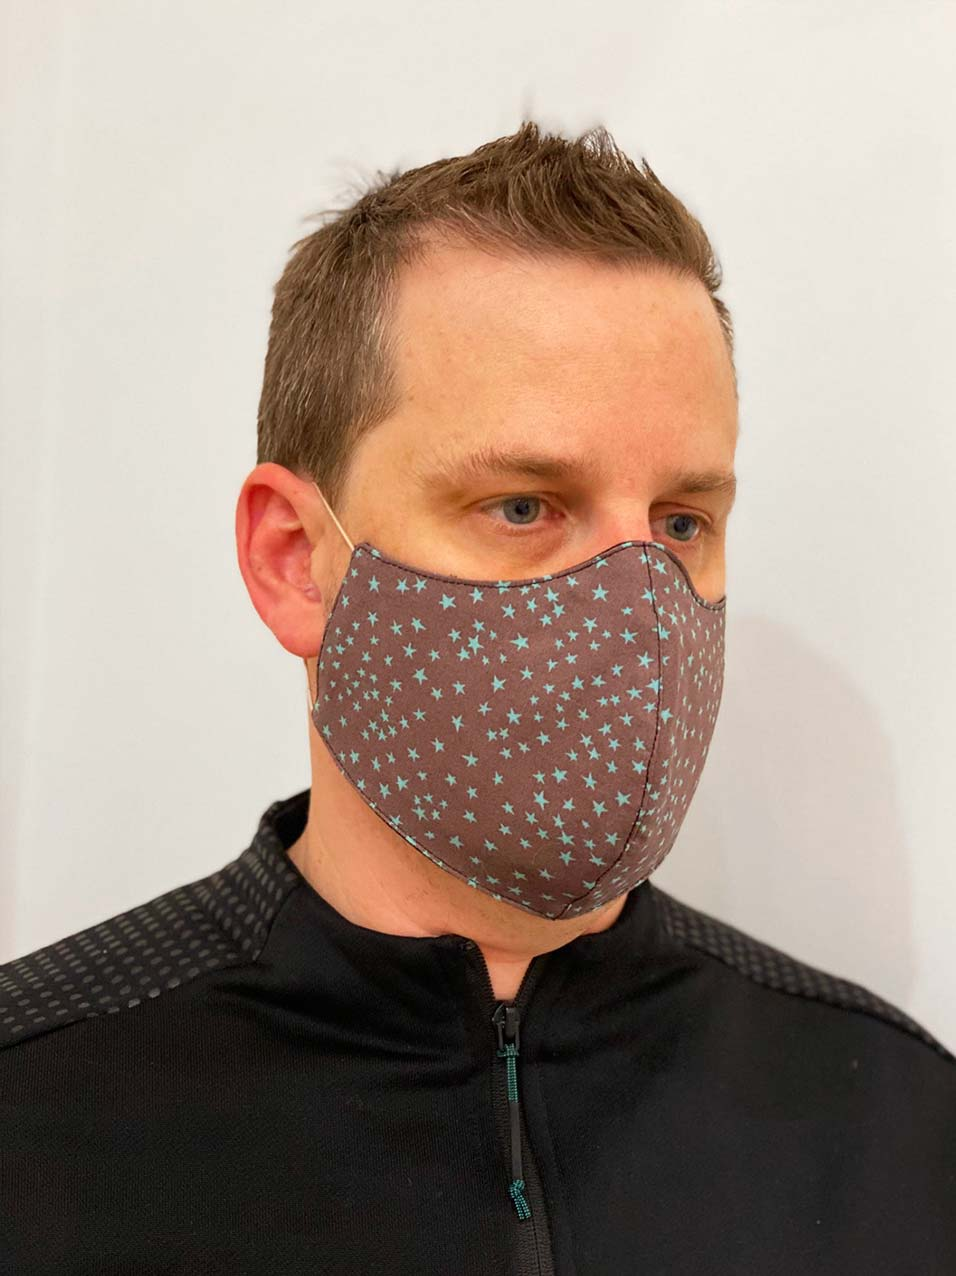 Designer reusable face mask with star pattern print worn by a man